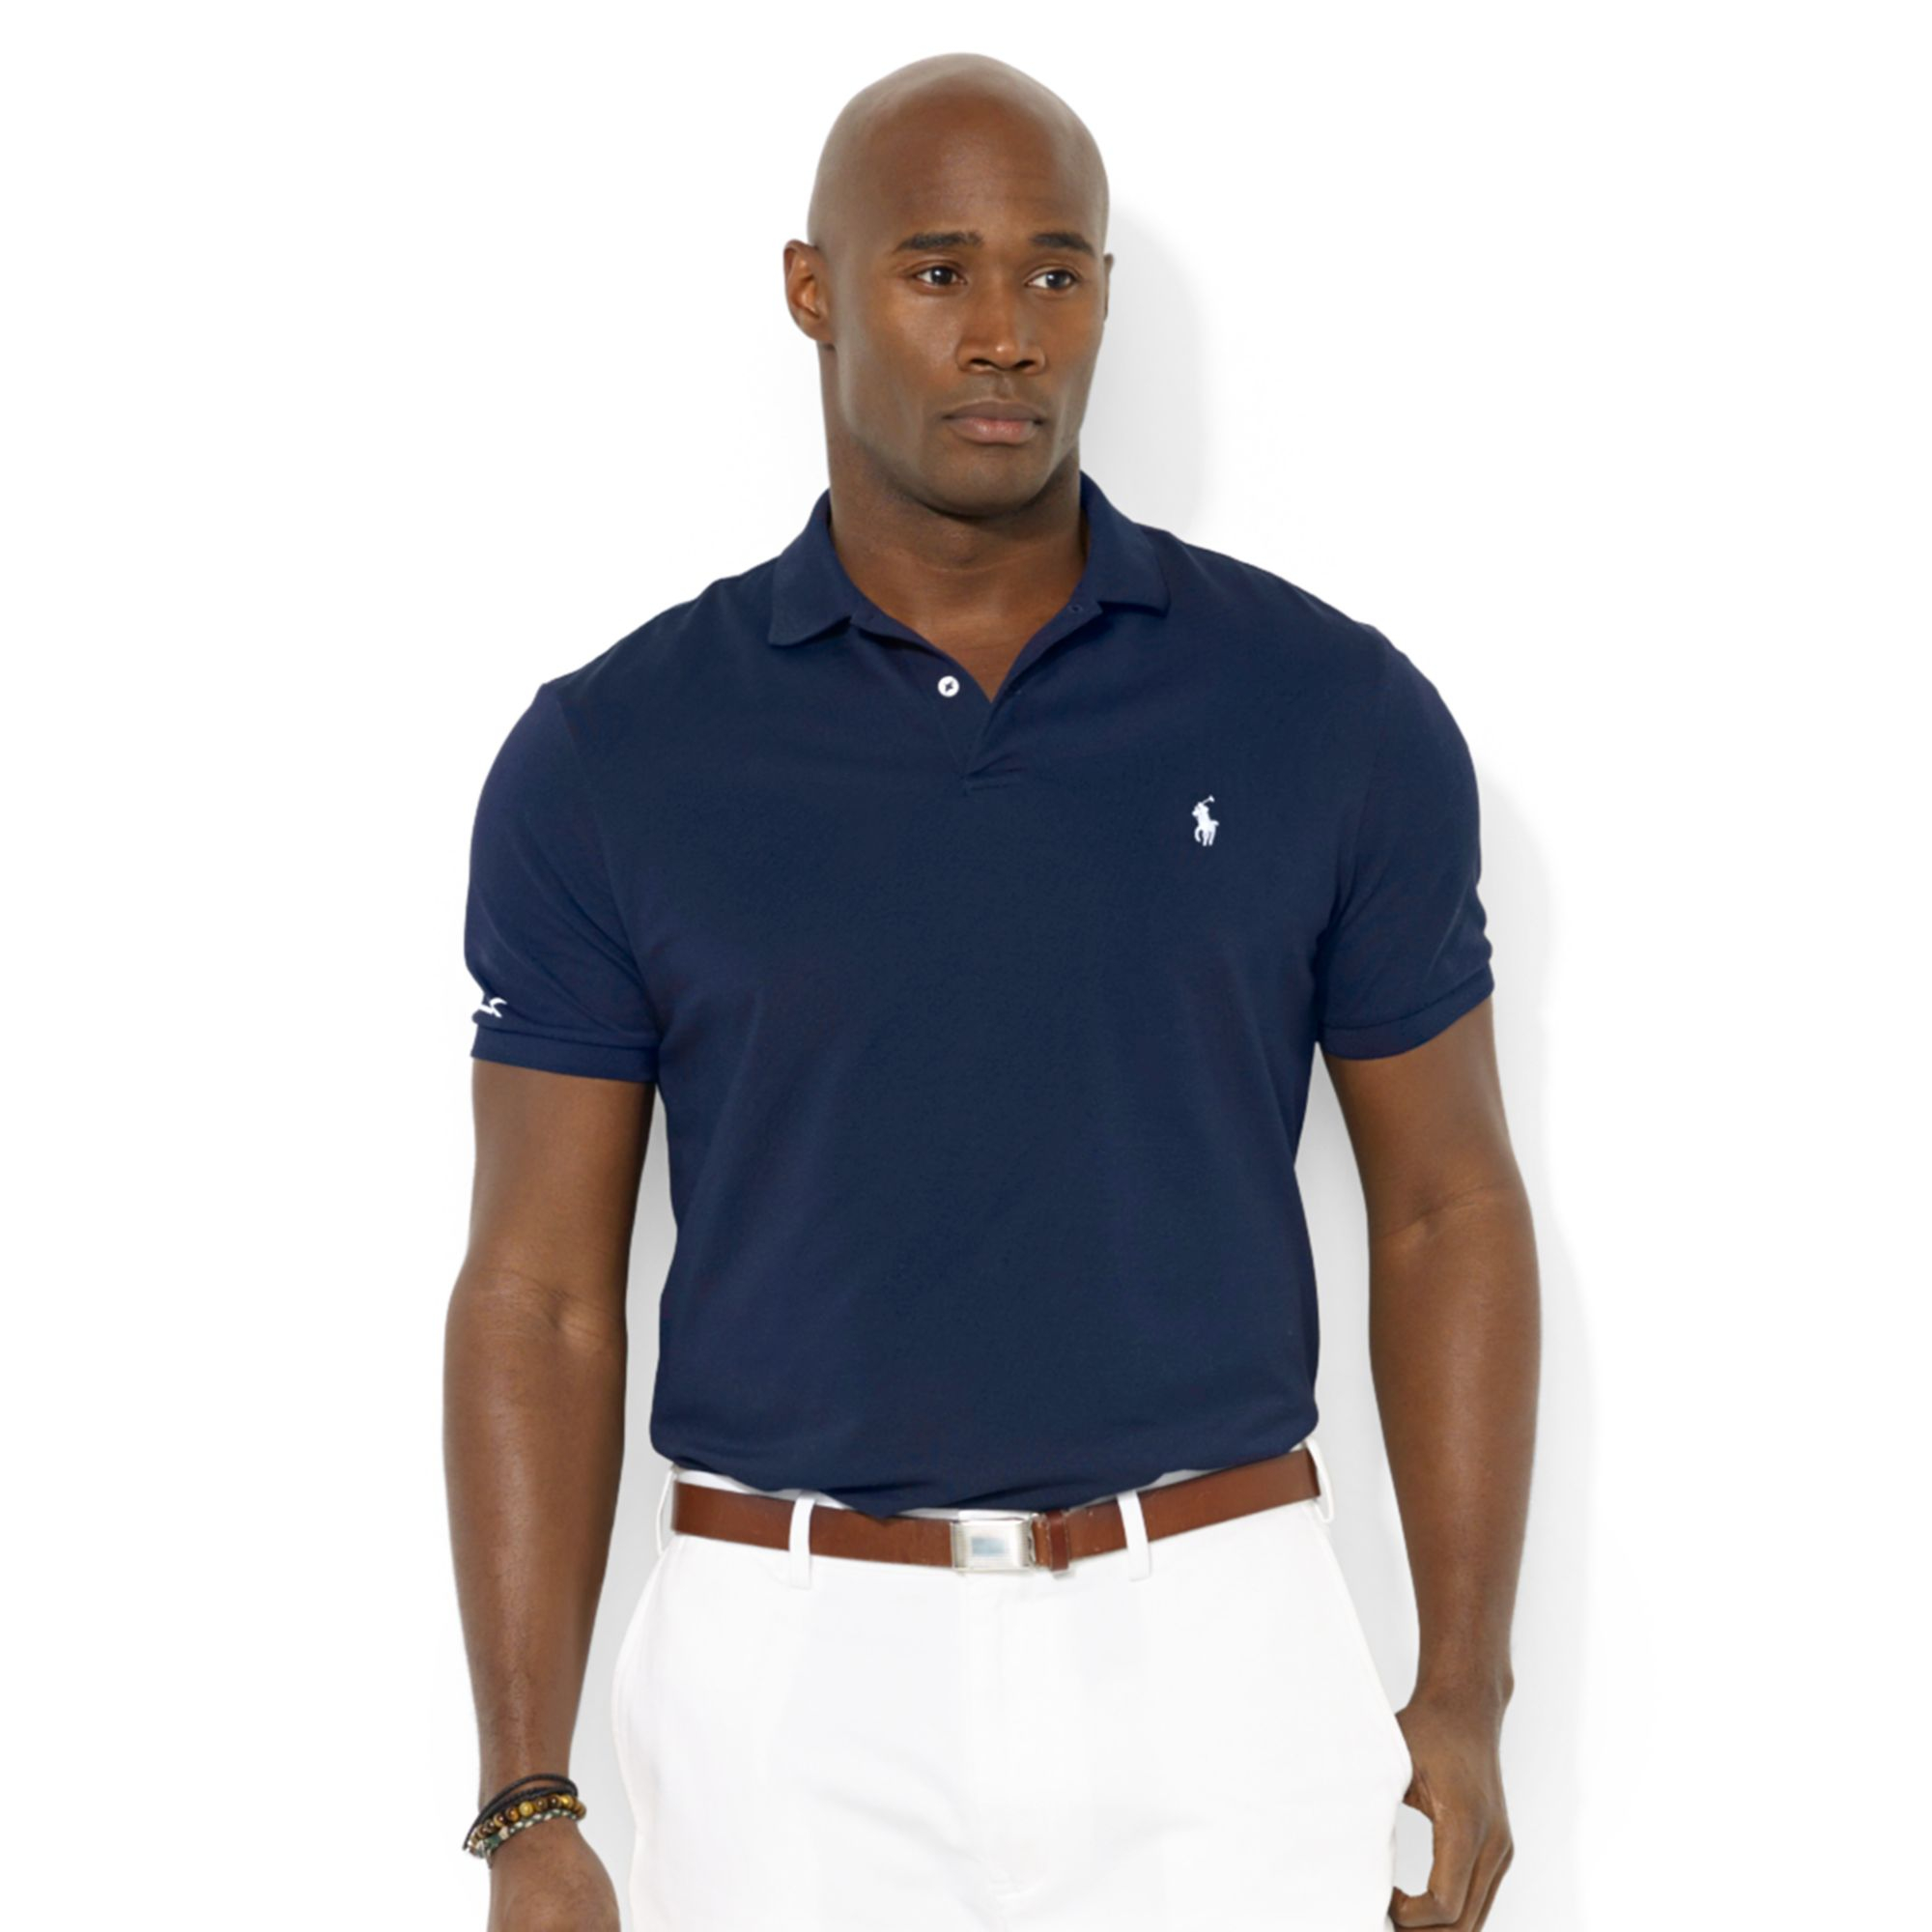 official ralph lauren website rlx polo shirts \u0026middot; Polo Ralph Lauren Wimbledon RLX Performance T-Shirt \u0026middot; performance polo shirt